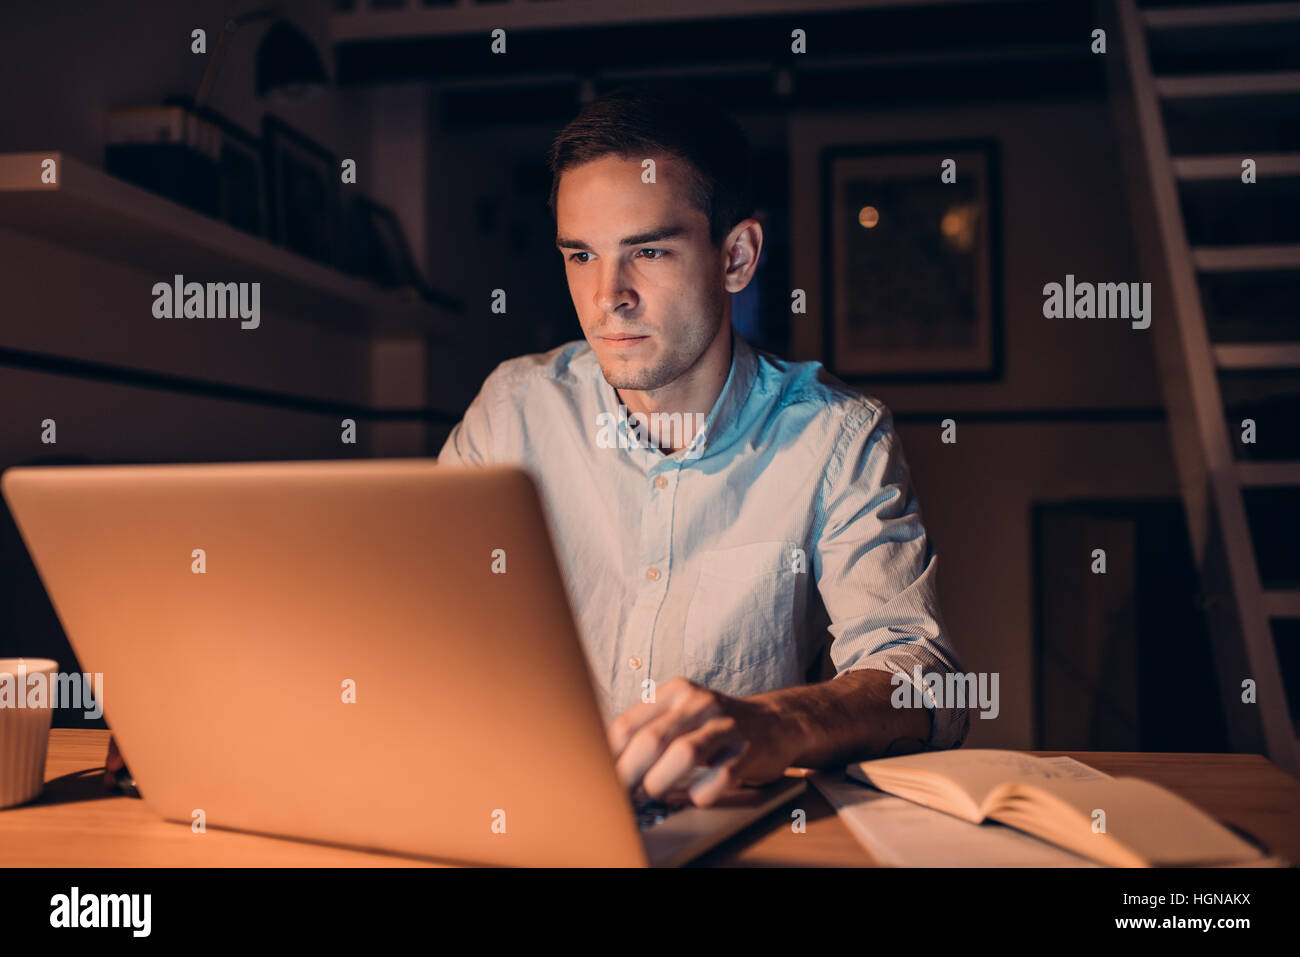 Young businessman working on a laptop late at night - Stock Image